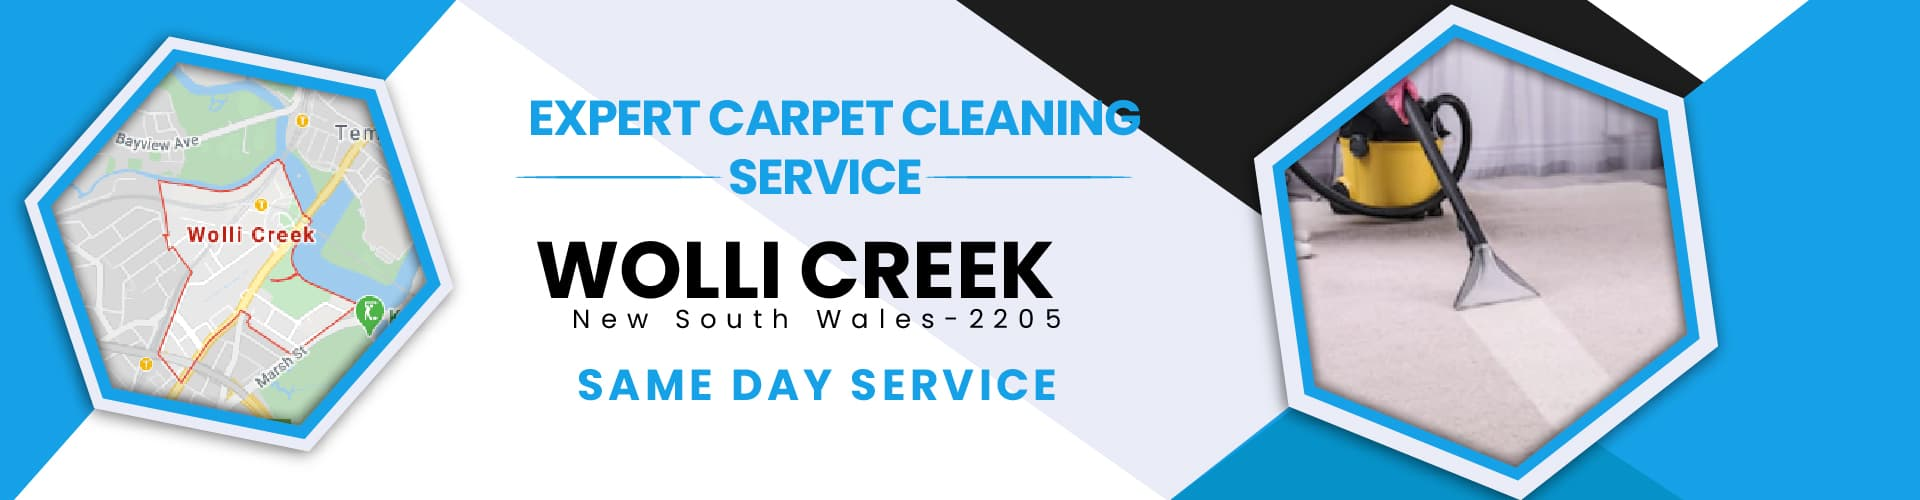 Carpet Cleaning Wolli Creek